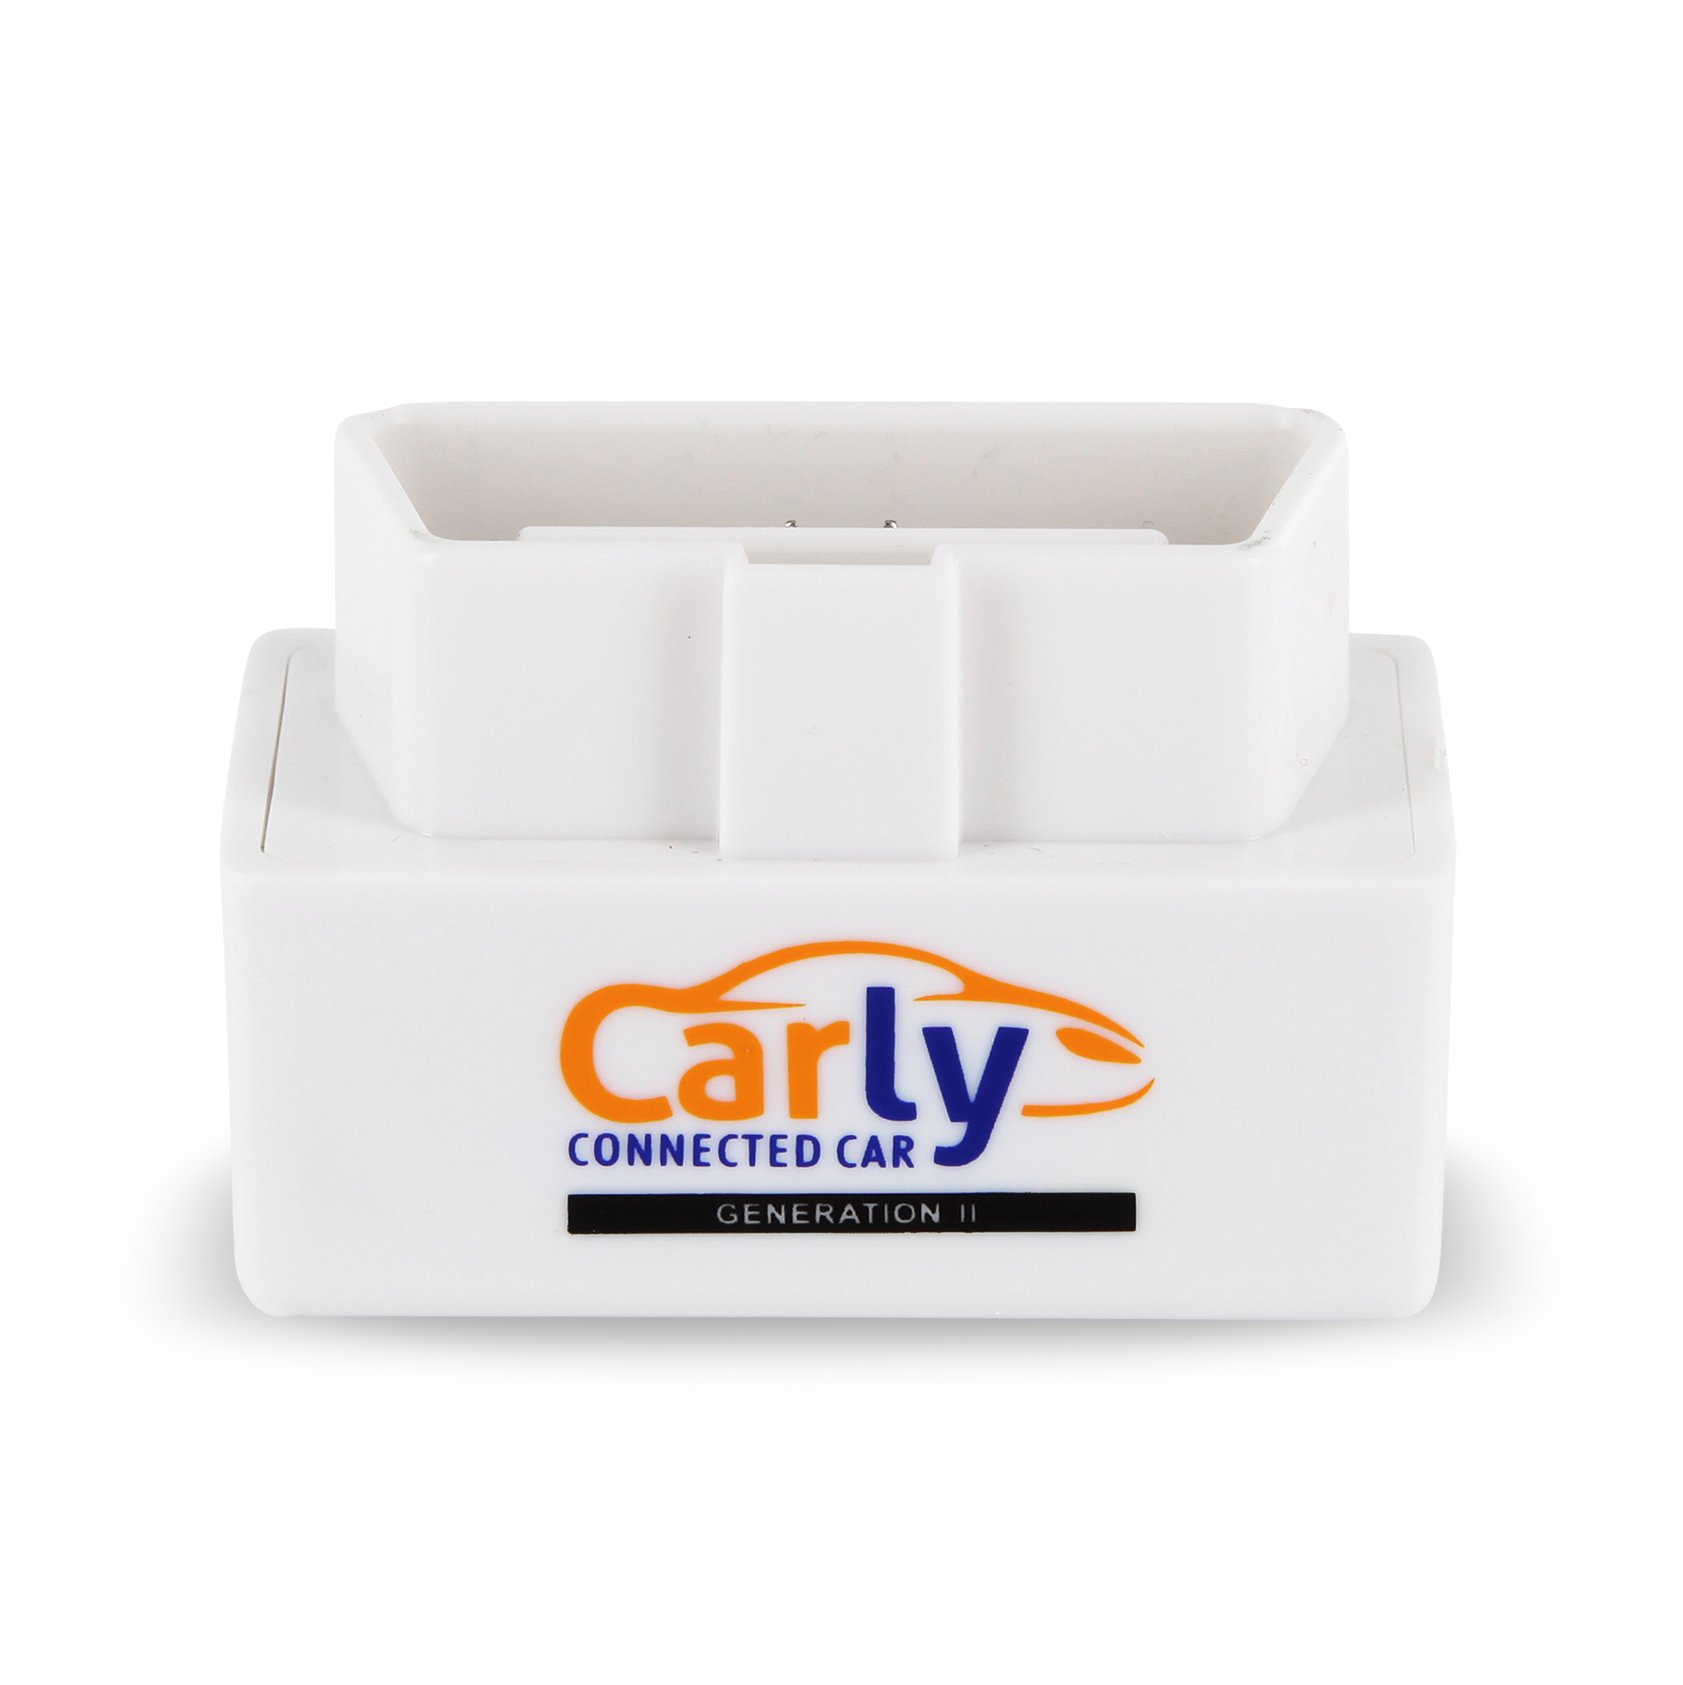 Carly Original Bluetooth GEN 2 OBD Adapter for Android - BMW, Mercedes, Porsche, Renault, Toyota by Carly (Image #3)